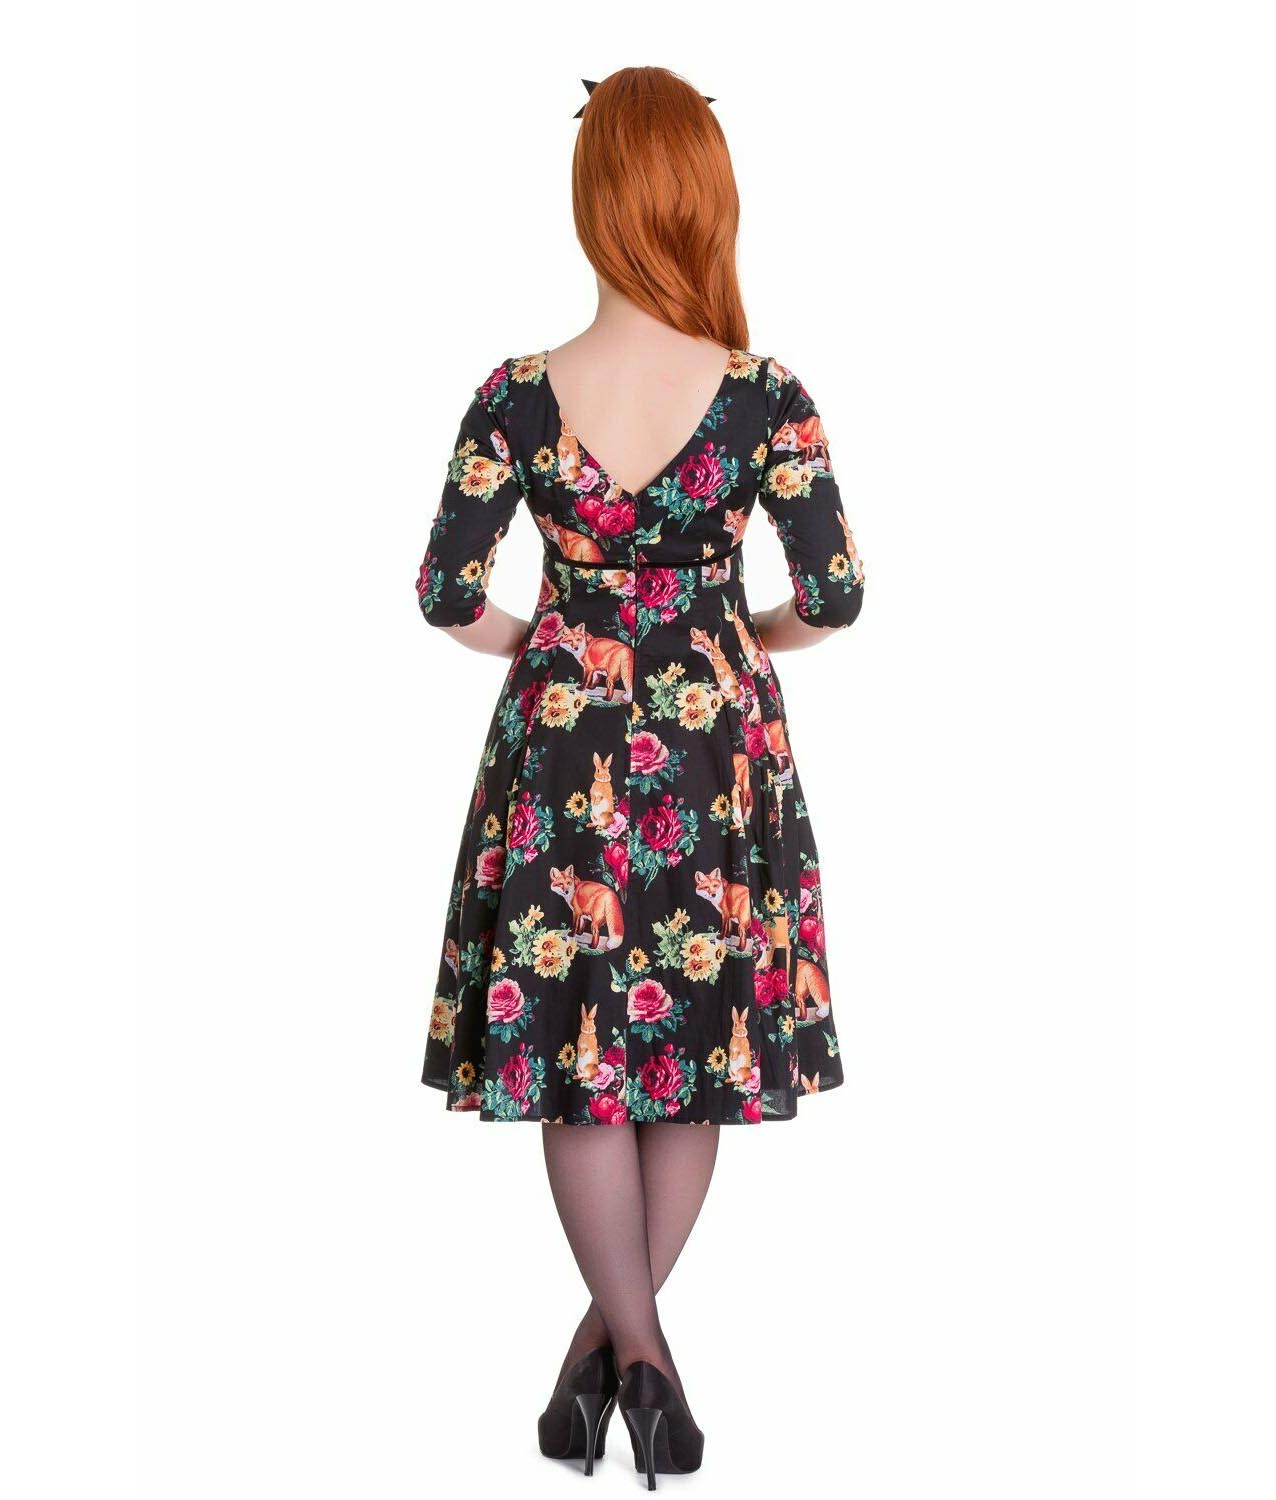 Hell-Bunny-40s-50s-Pin-Up-Vintage-Dress-HERMELINE-Woodland-Fox-All-Sizes thumbnail 9